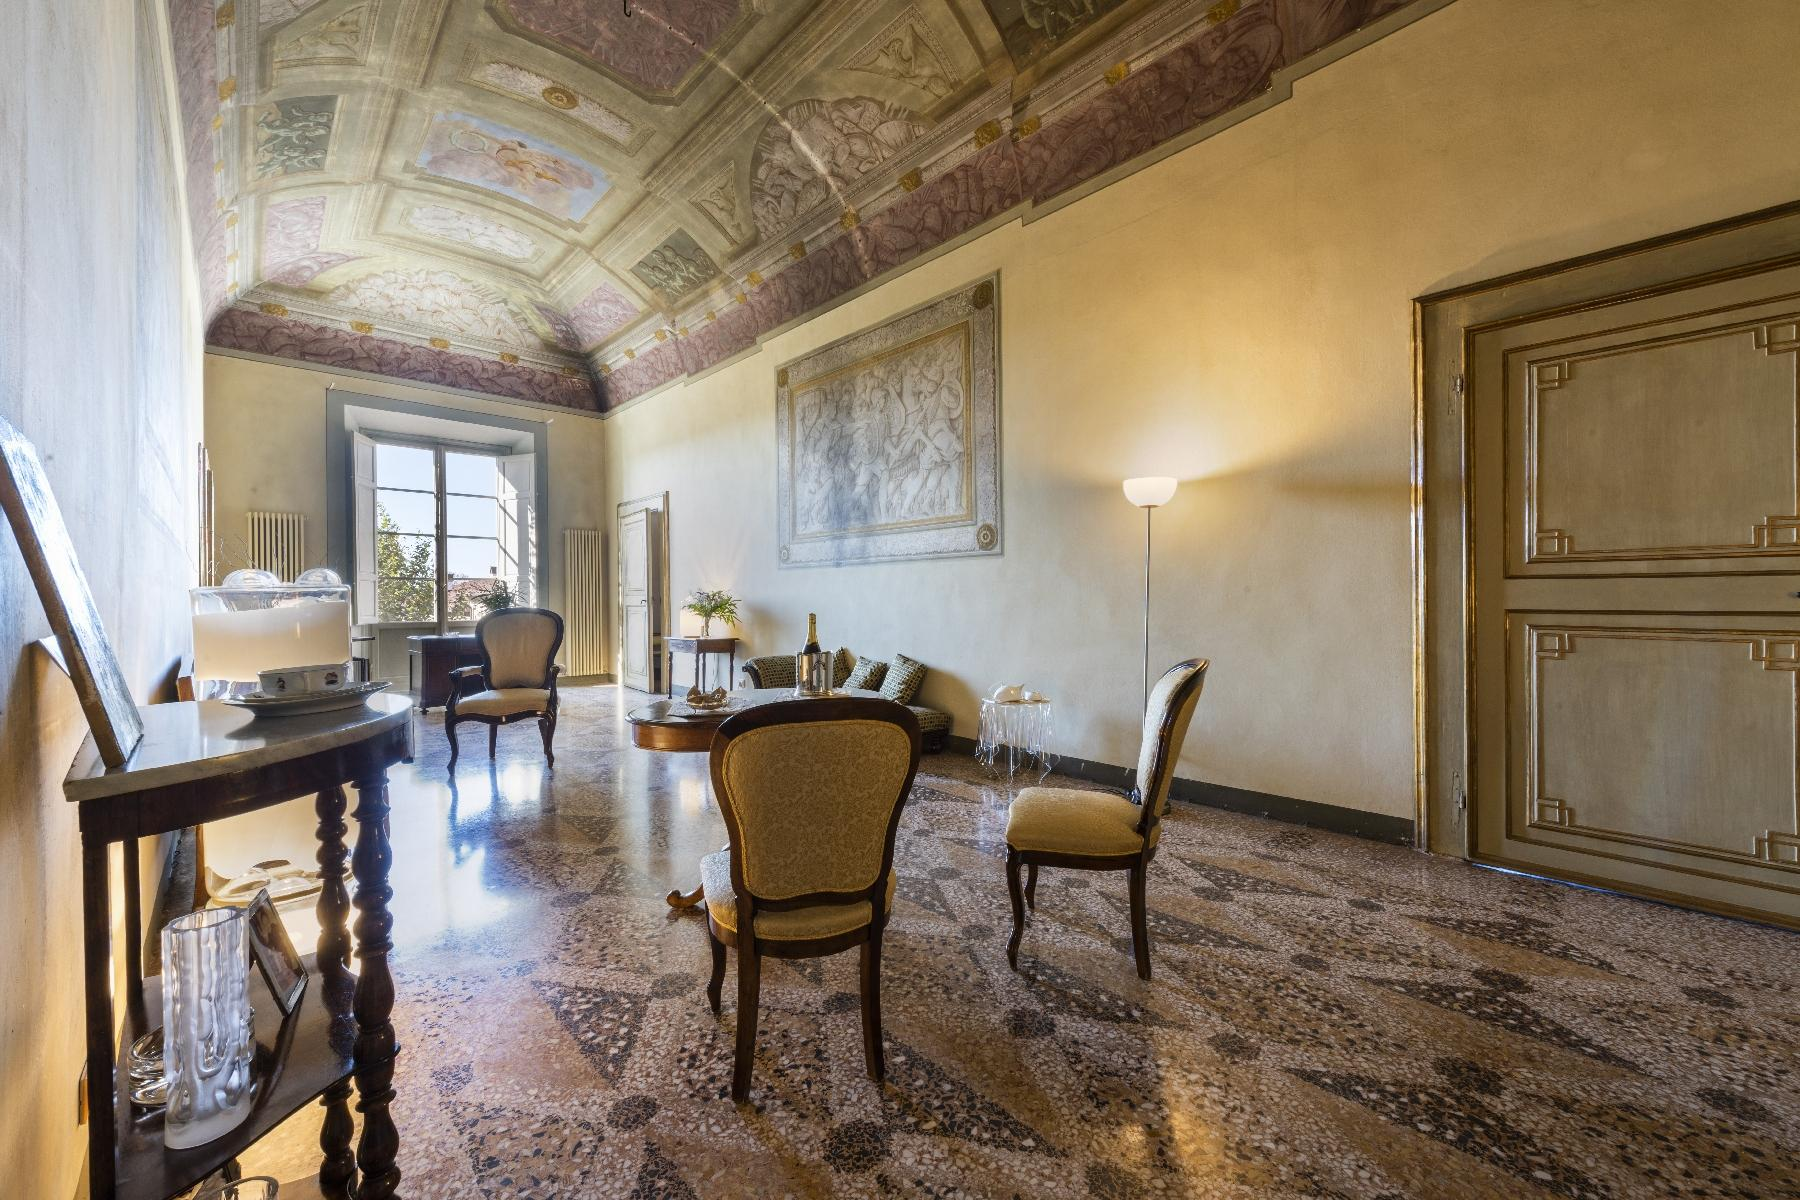 Stunning 18th century villa in the heart of Tuscany - 7